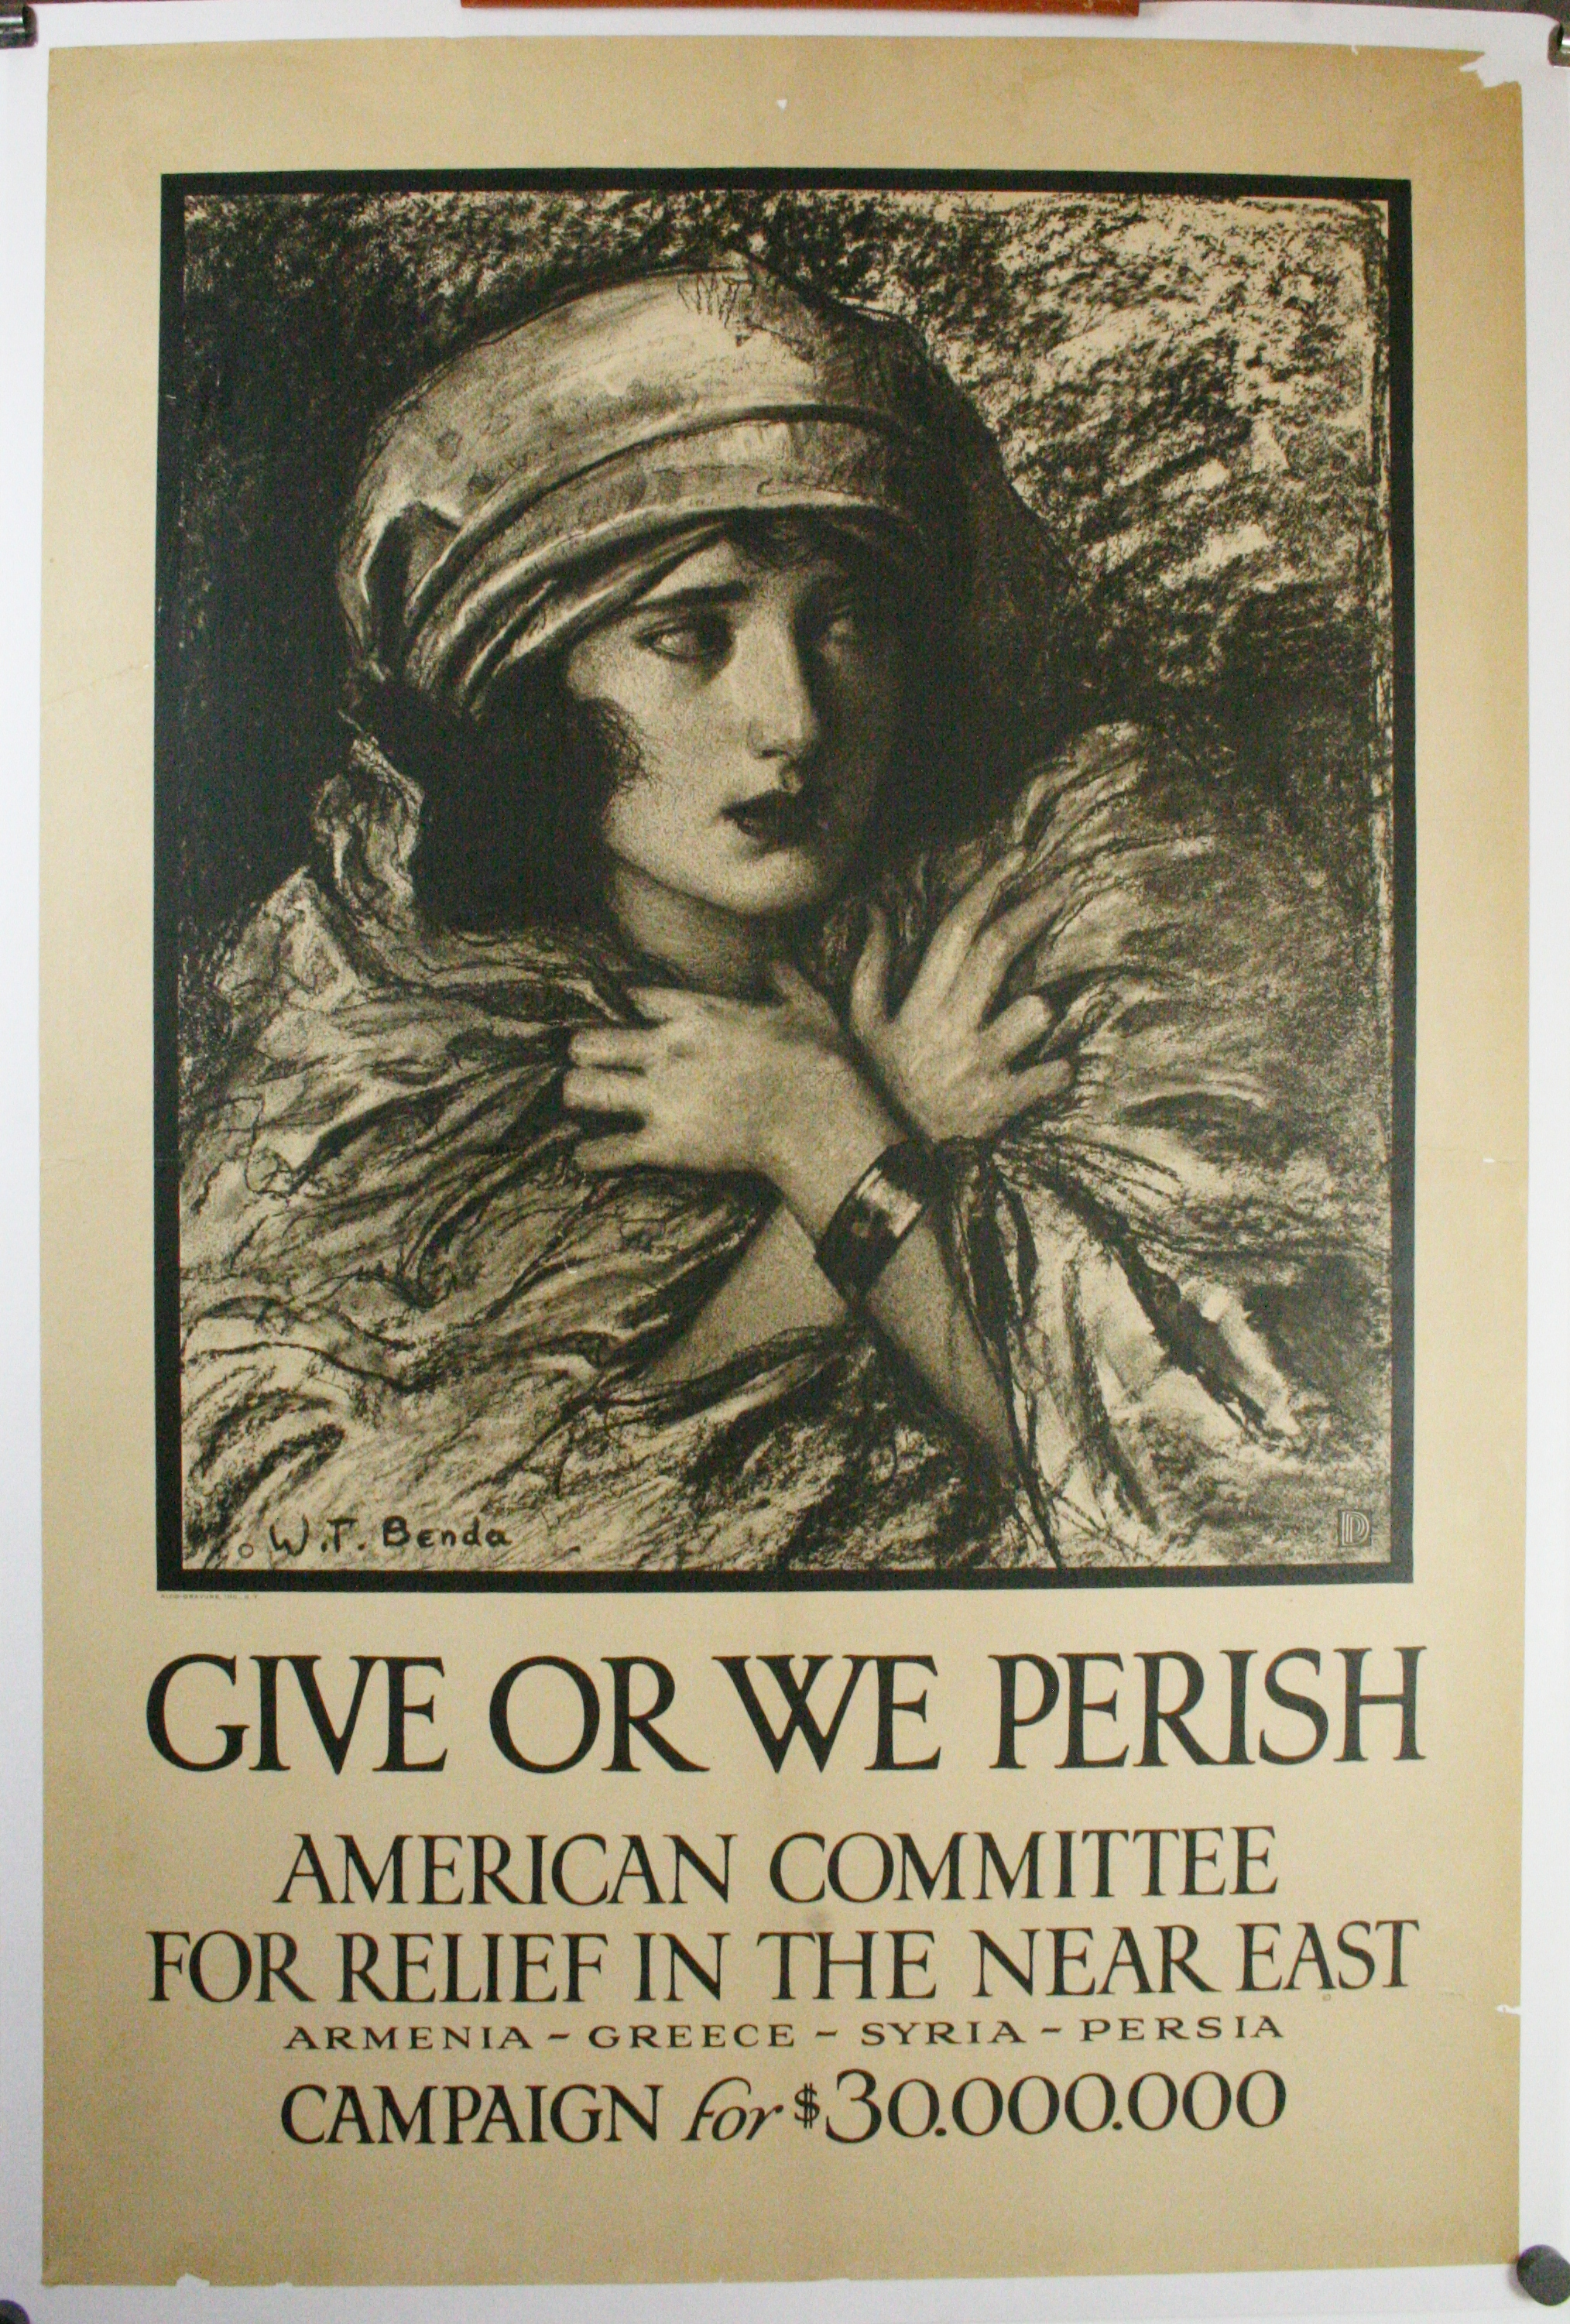 Give or we perish